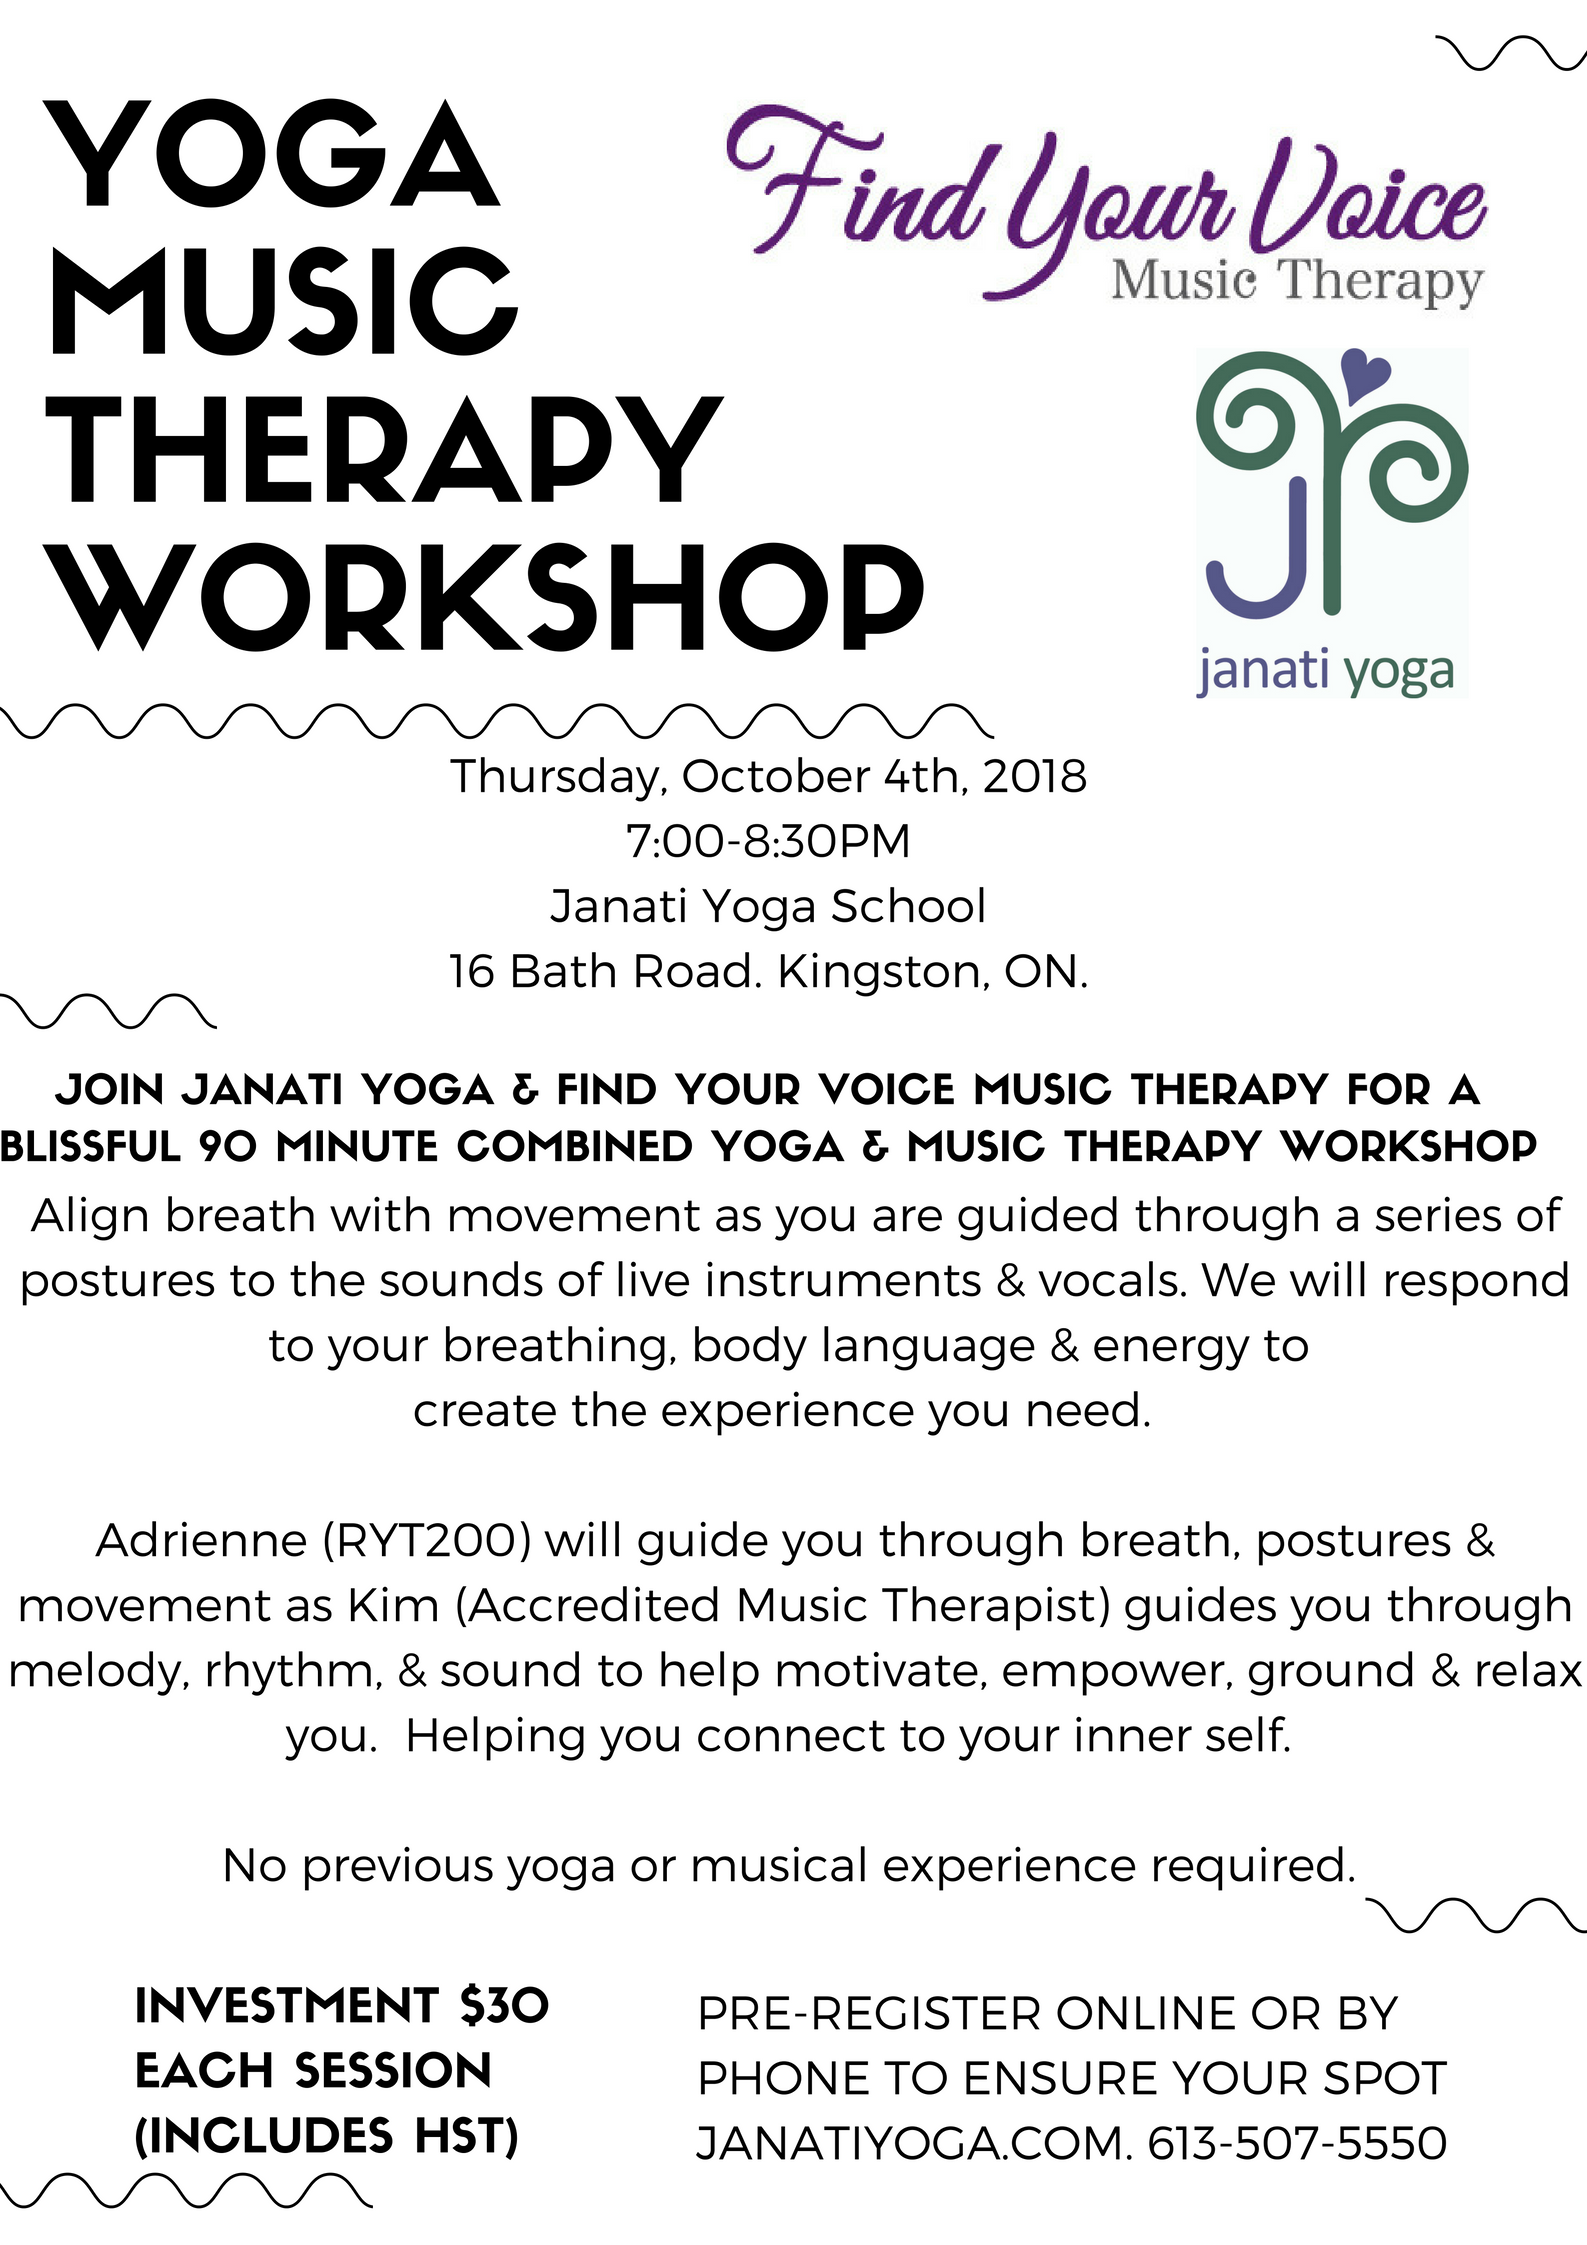 Yoga. Music Therapy. Janati. Find Your Voice Music Therapy. Kingston. Ontario